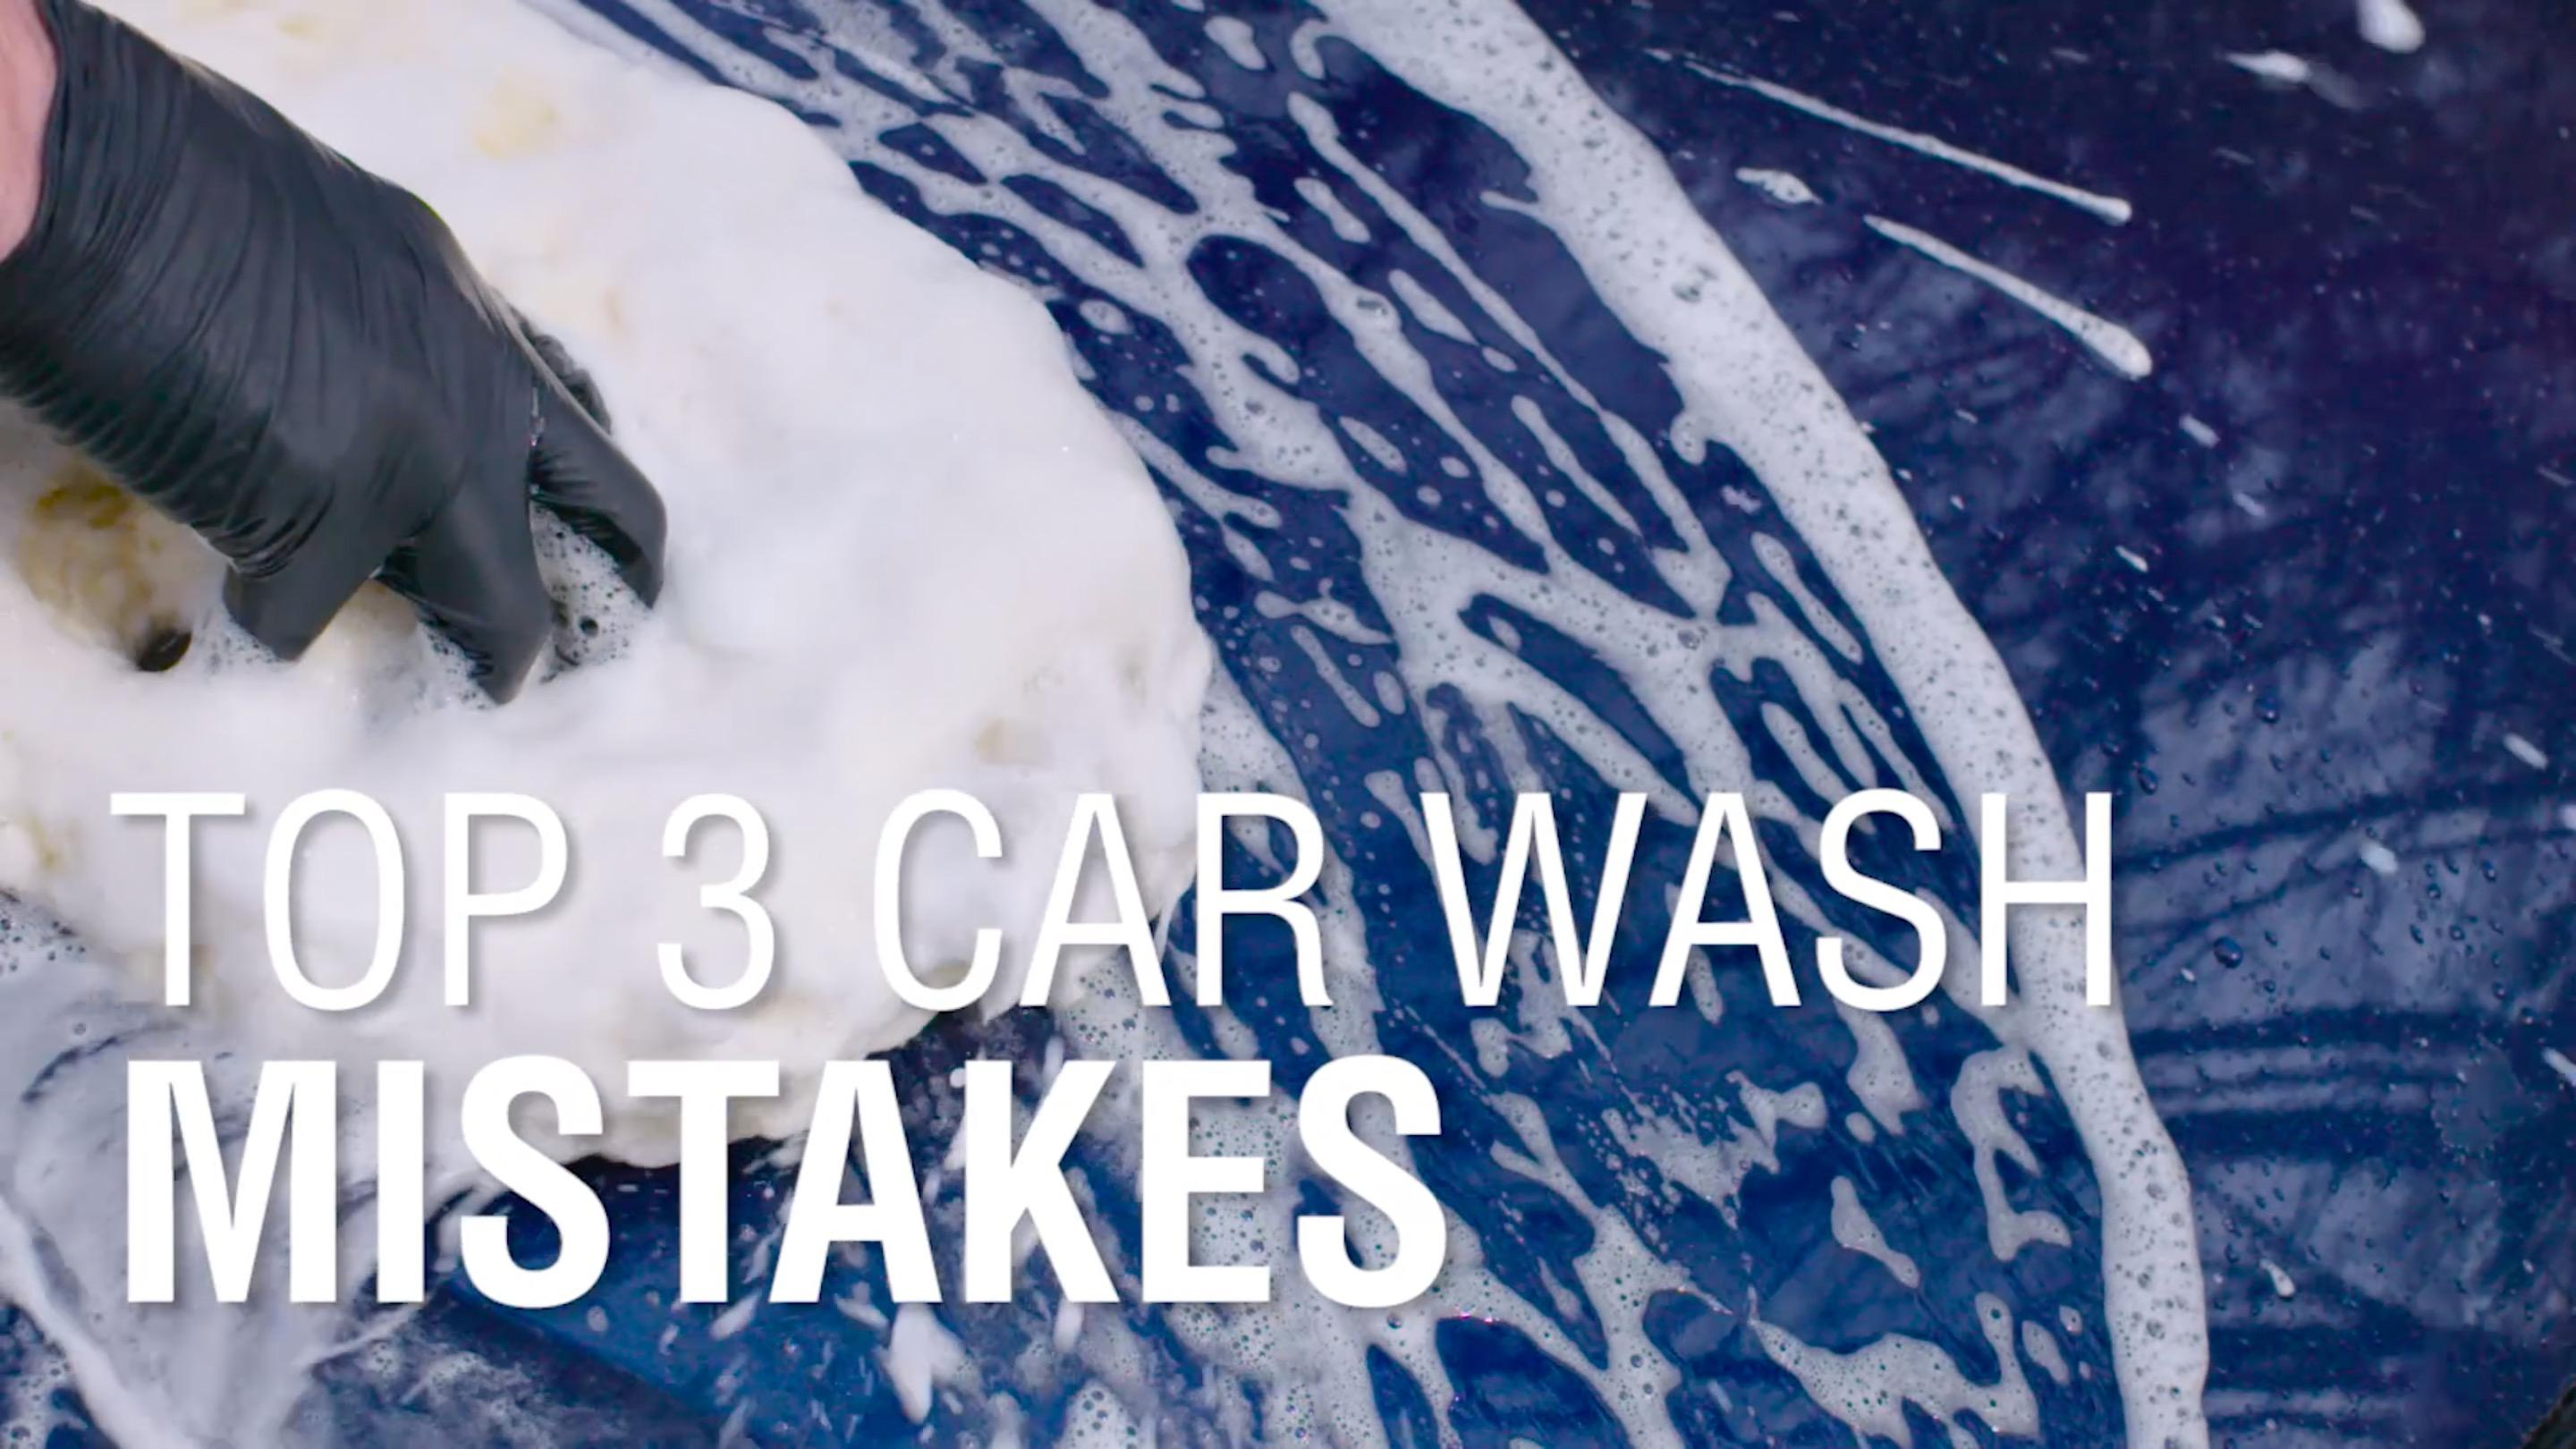 Top 3 Car Washing Mistakes